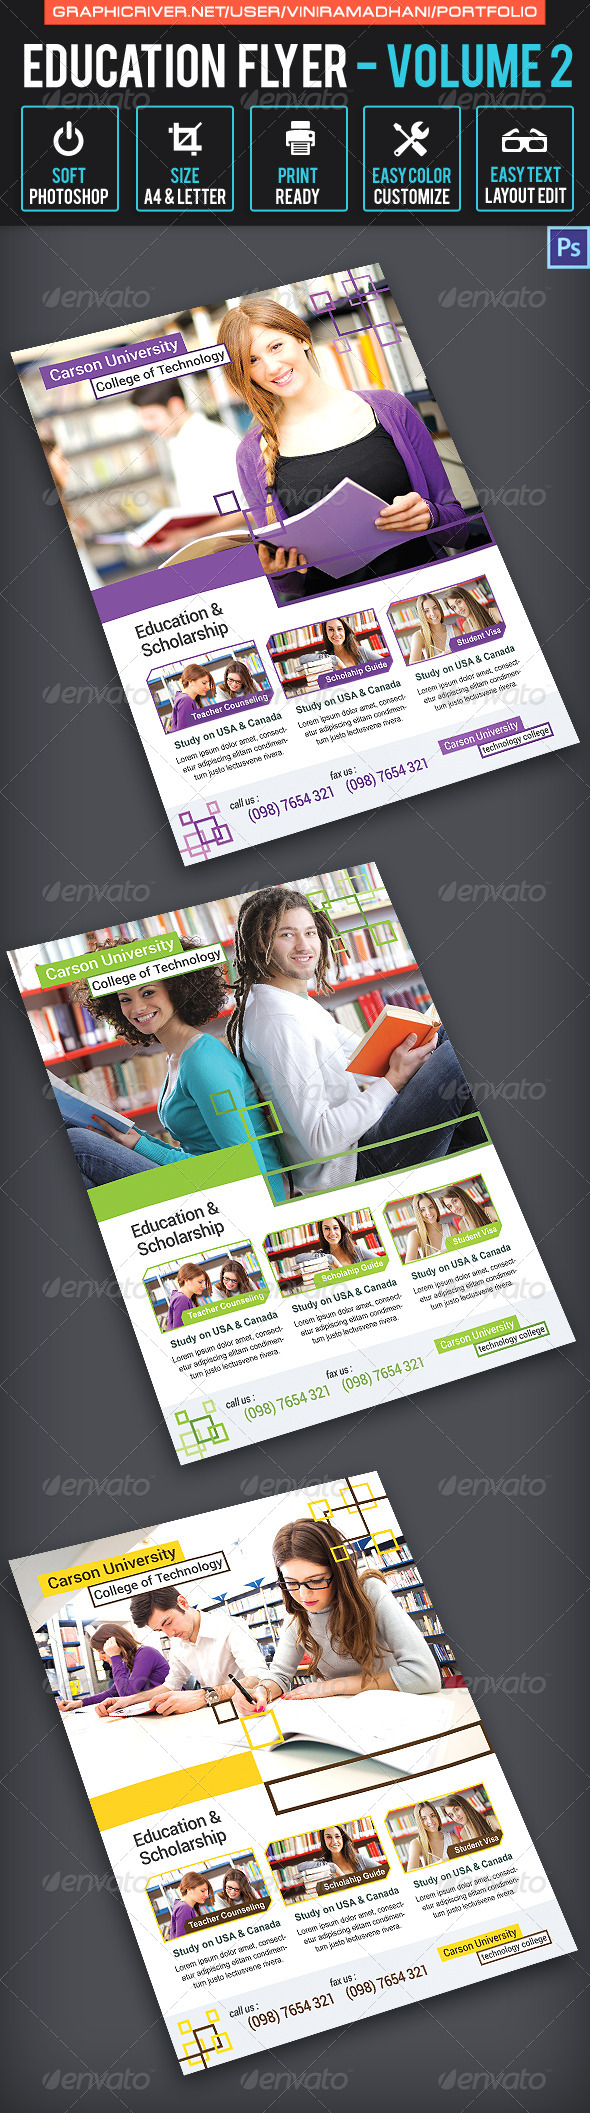 GraphicRiver Education Flyer Volume 2 7658224